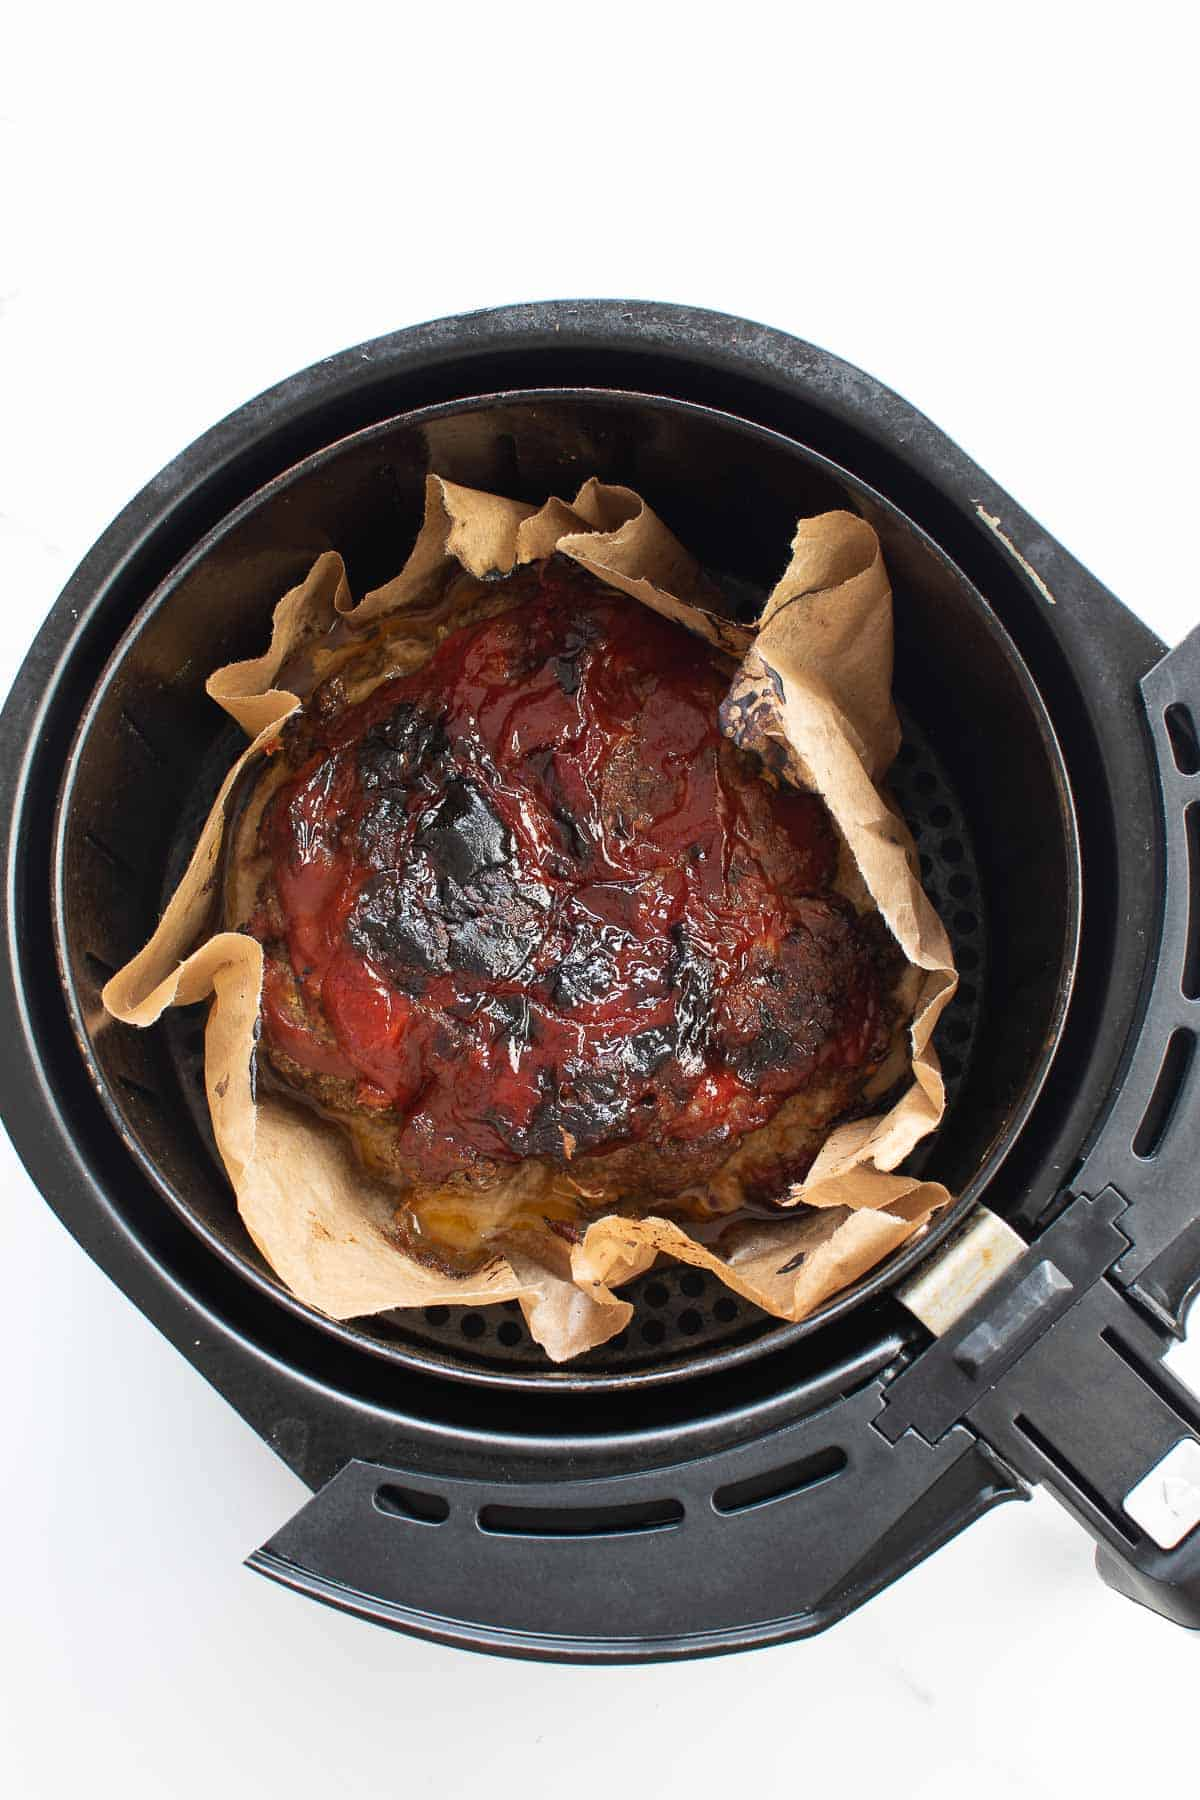 A cooked meatloaf in an air fryer.